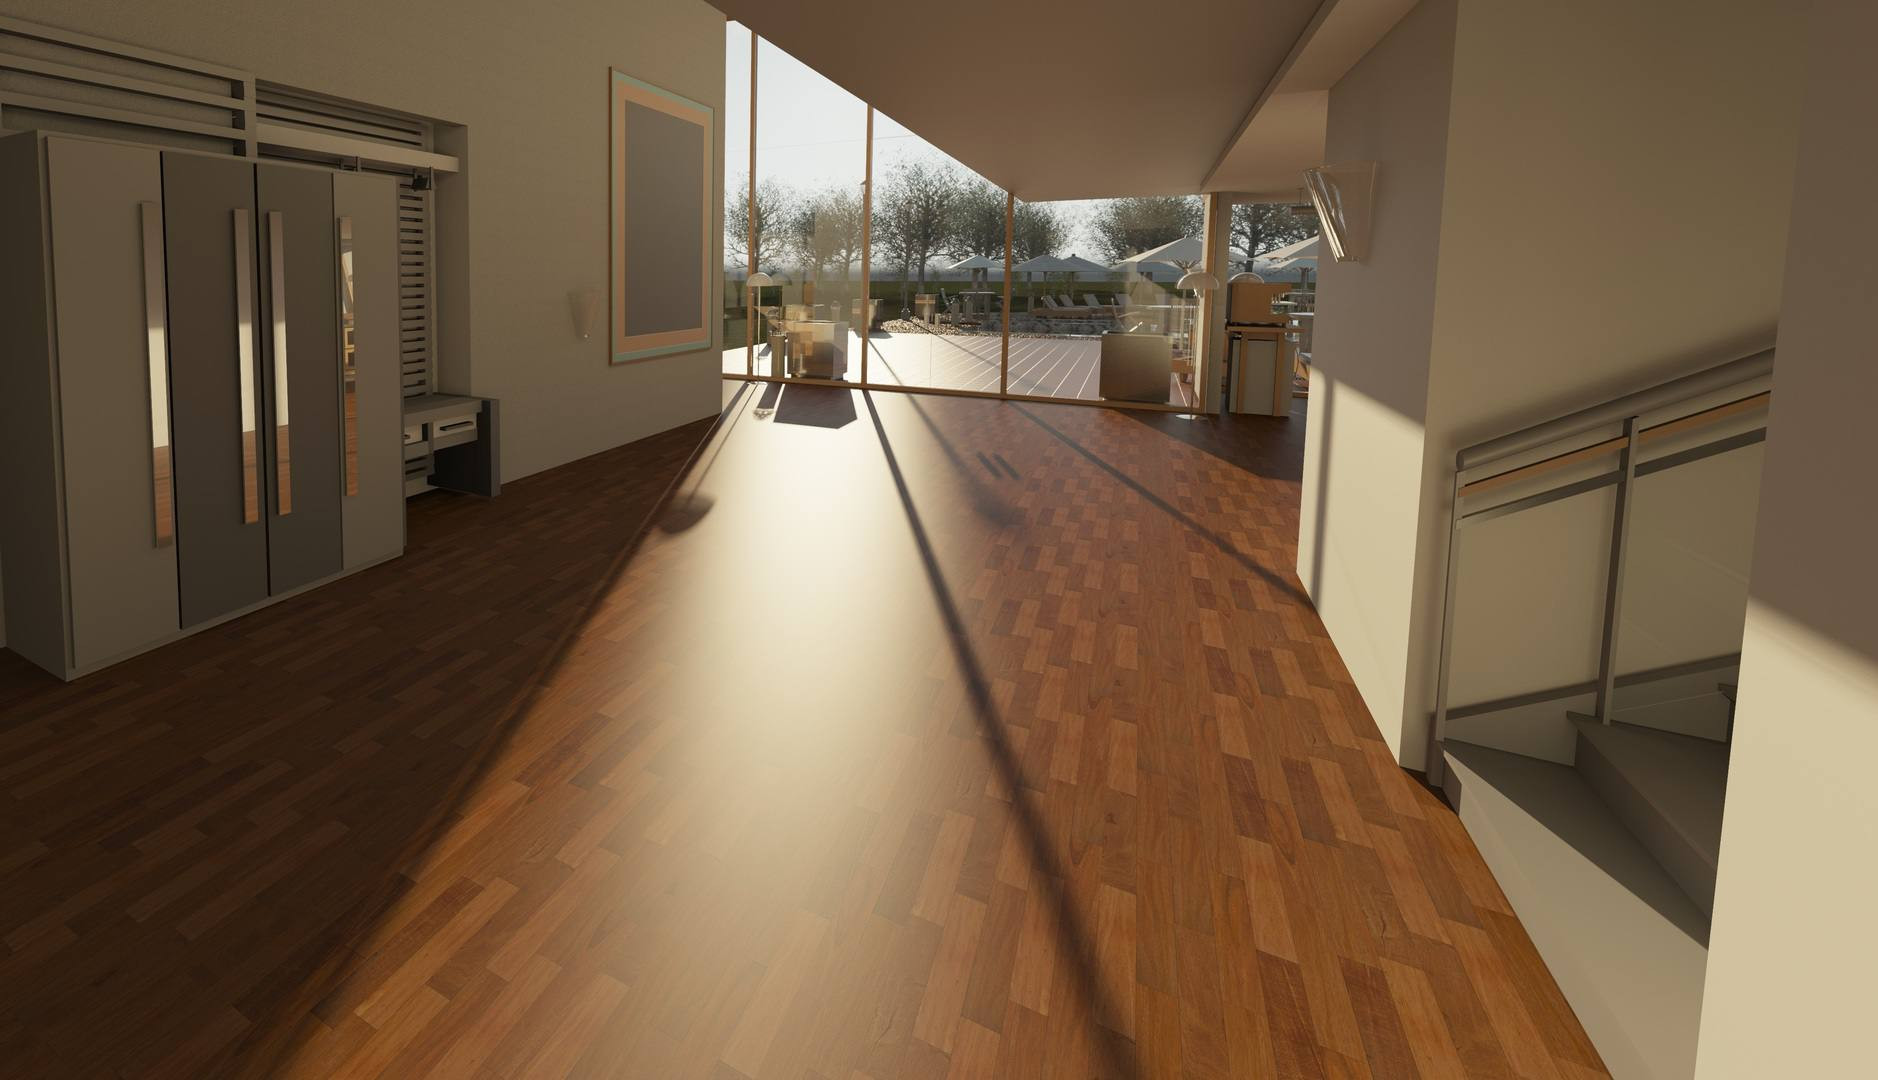 can you glue engineered hardwood floors to concrete of common flooring types currently used in renovation and building intended for architecture wood house floor interior window 917178 pxhere com 5ba27a2cc9e77c00503b27b9